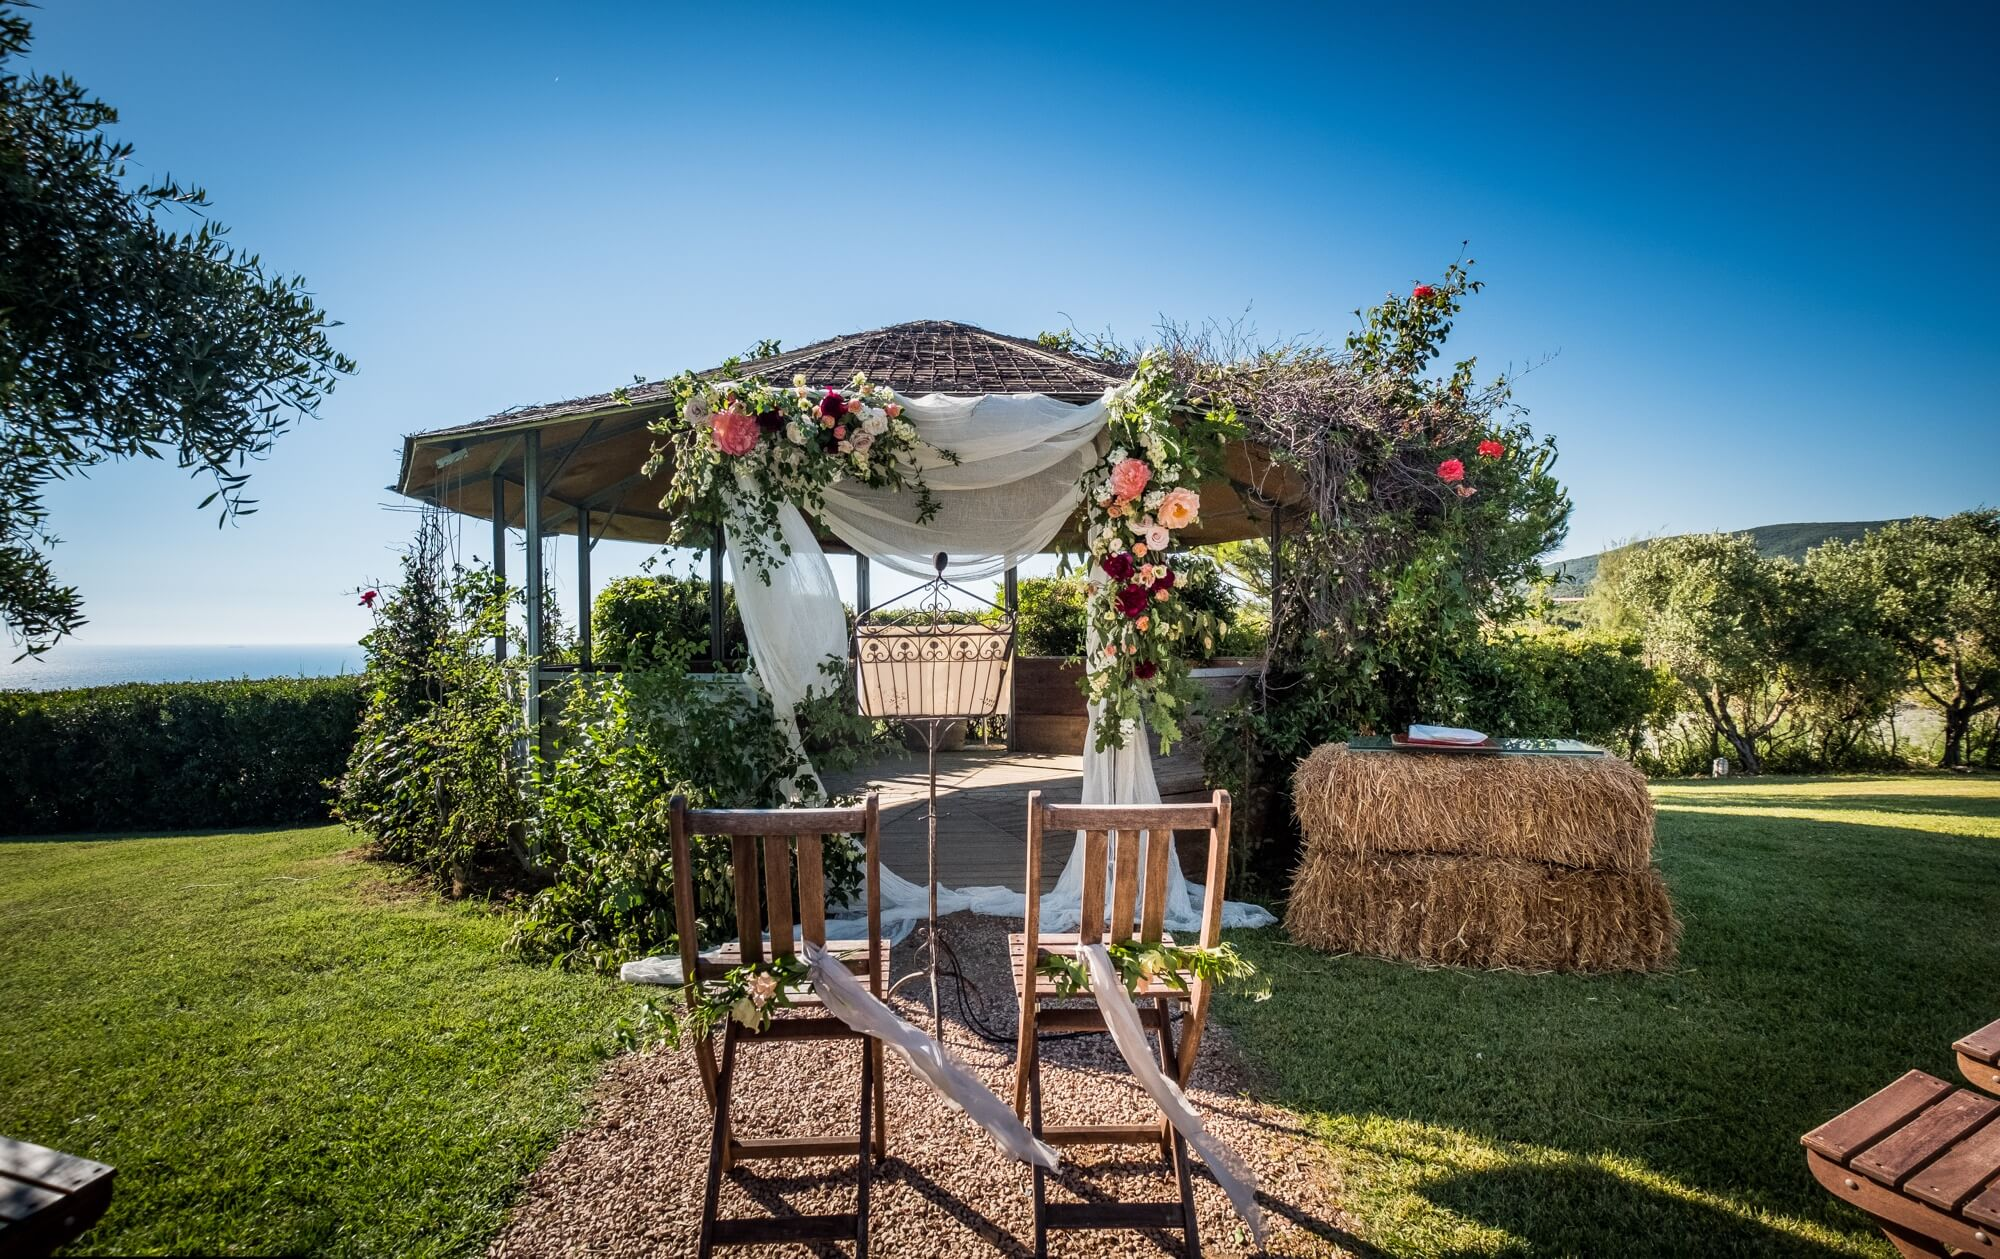 Wedding by the sea on the Tuscany coast, Versilia, Argentario. Giulia Alessandri Wedding Planner, Wedding Design & Wedding Coordination in Tuscany.